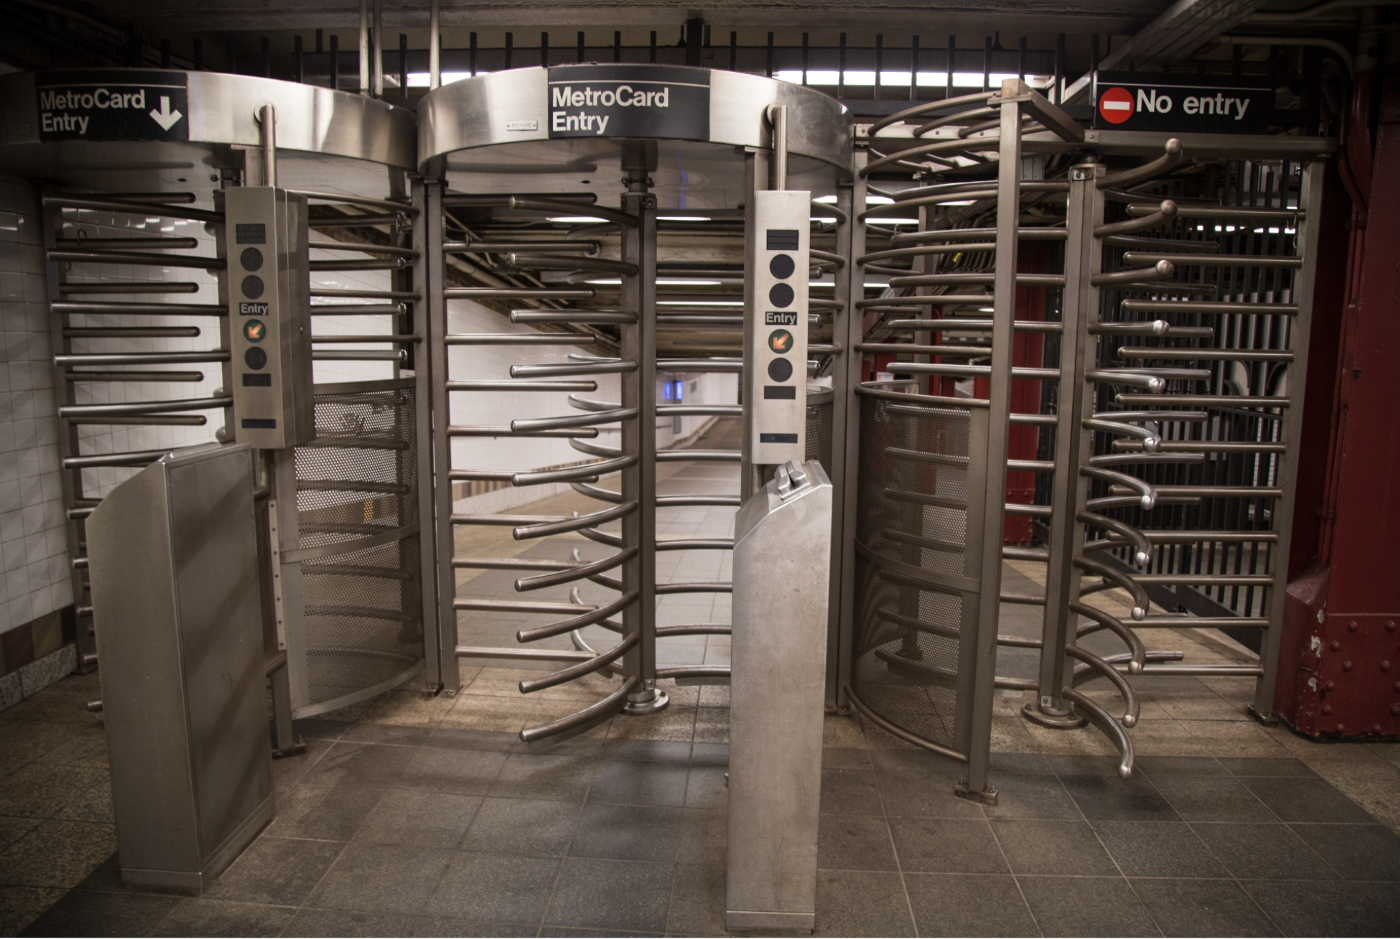 subway turnstyles with curved metal gates